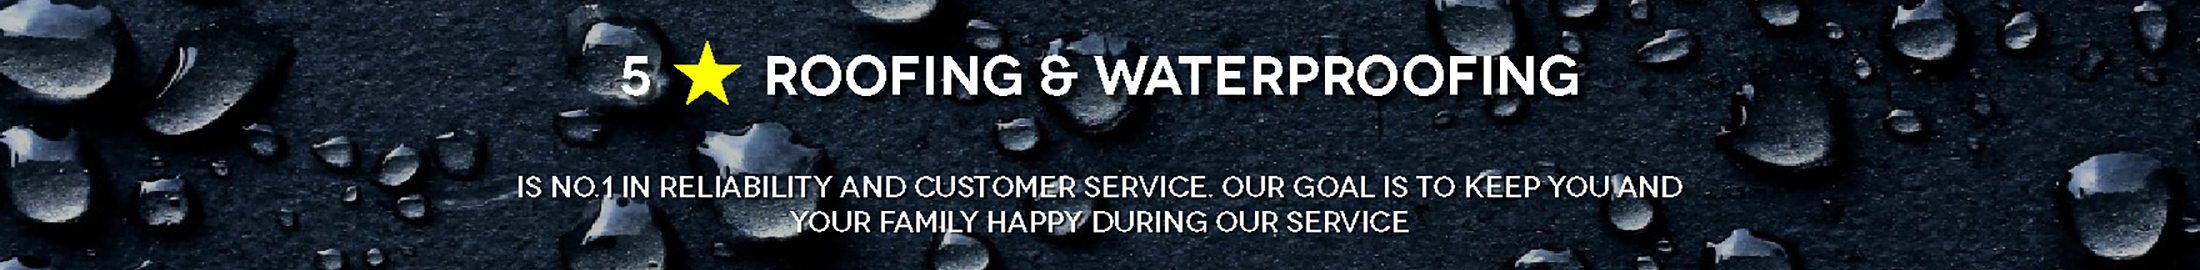 5* Roofing & Waterproofing-Banner